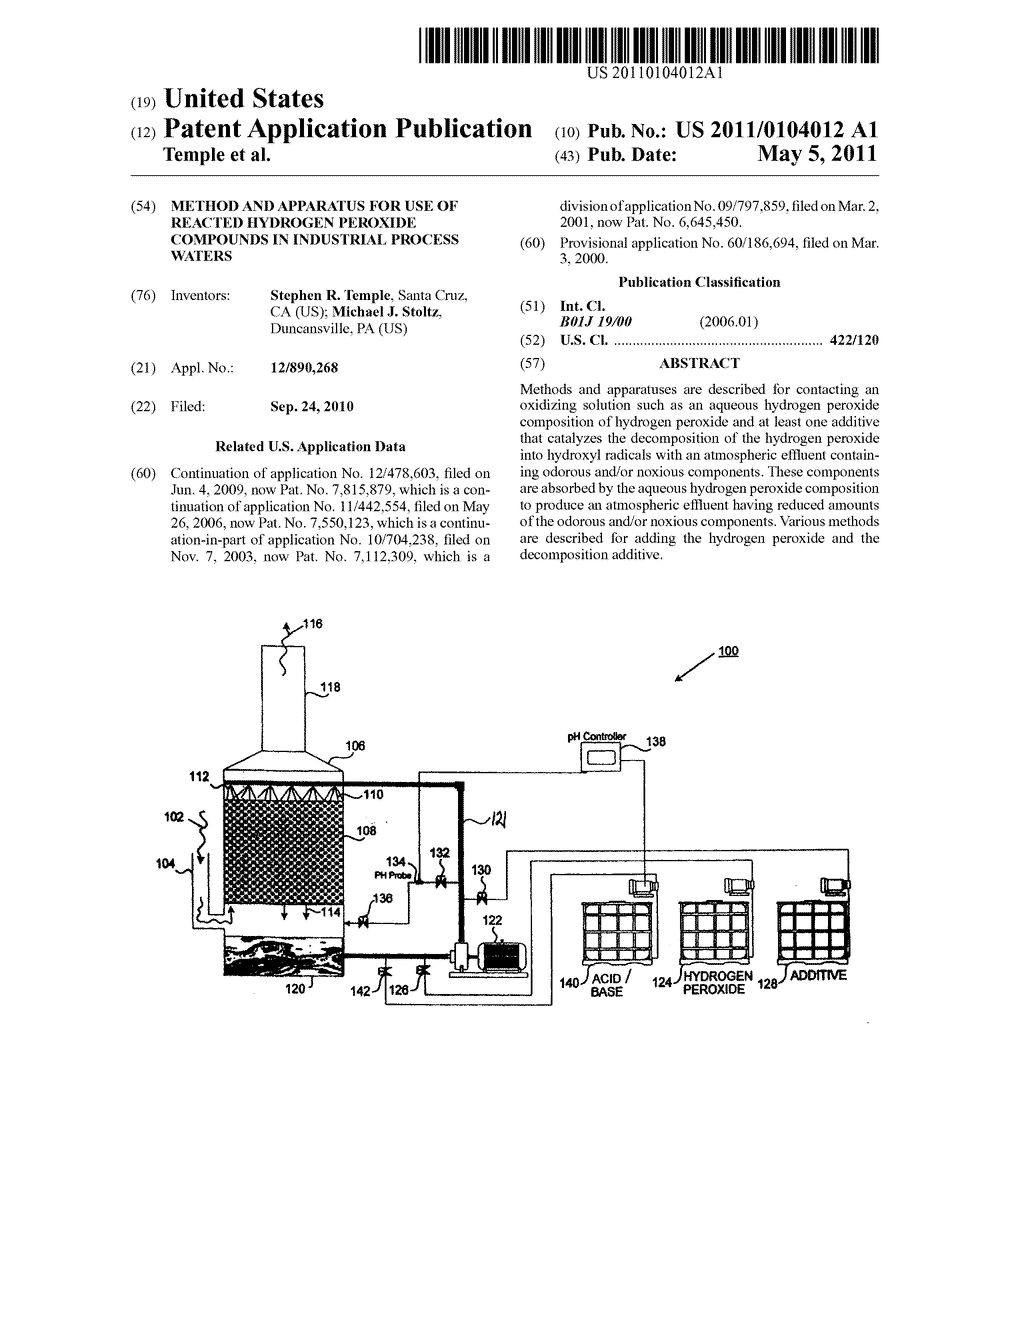 Method and Apparatus for Use of Reacted Hydrogen Peroxide Compounds in Industrial Process Waters - diagram, schematic, and image 01